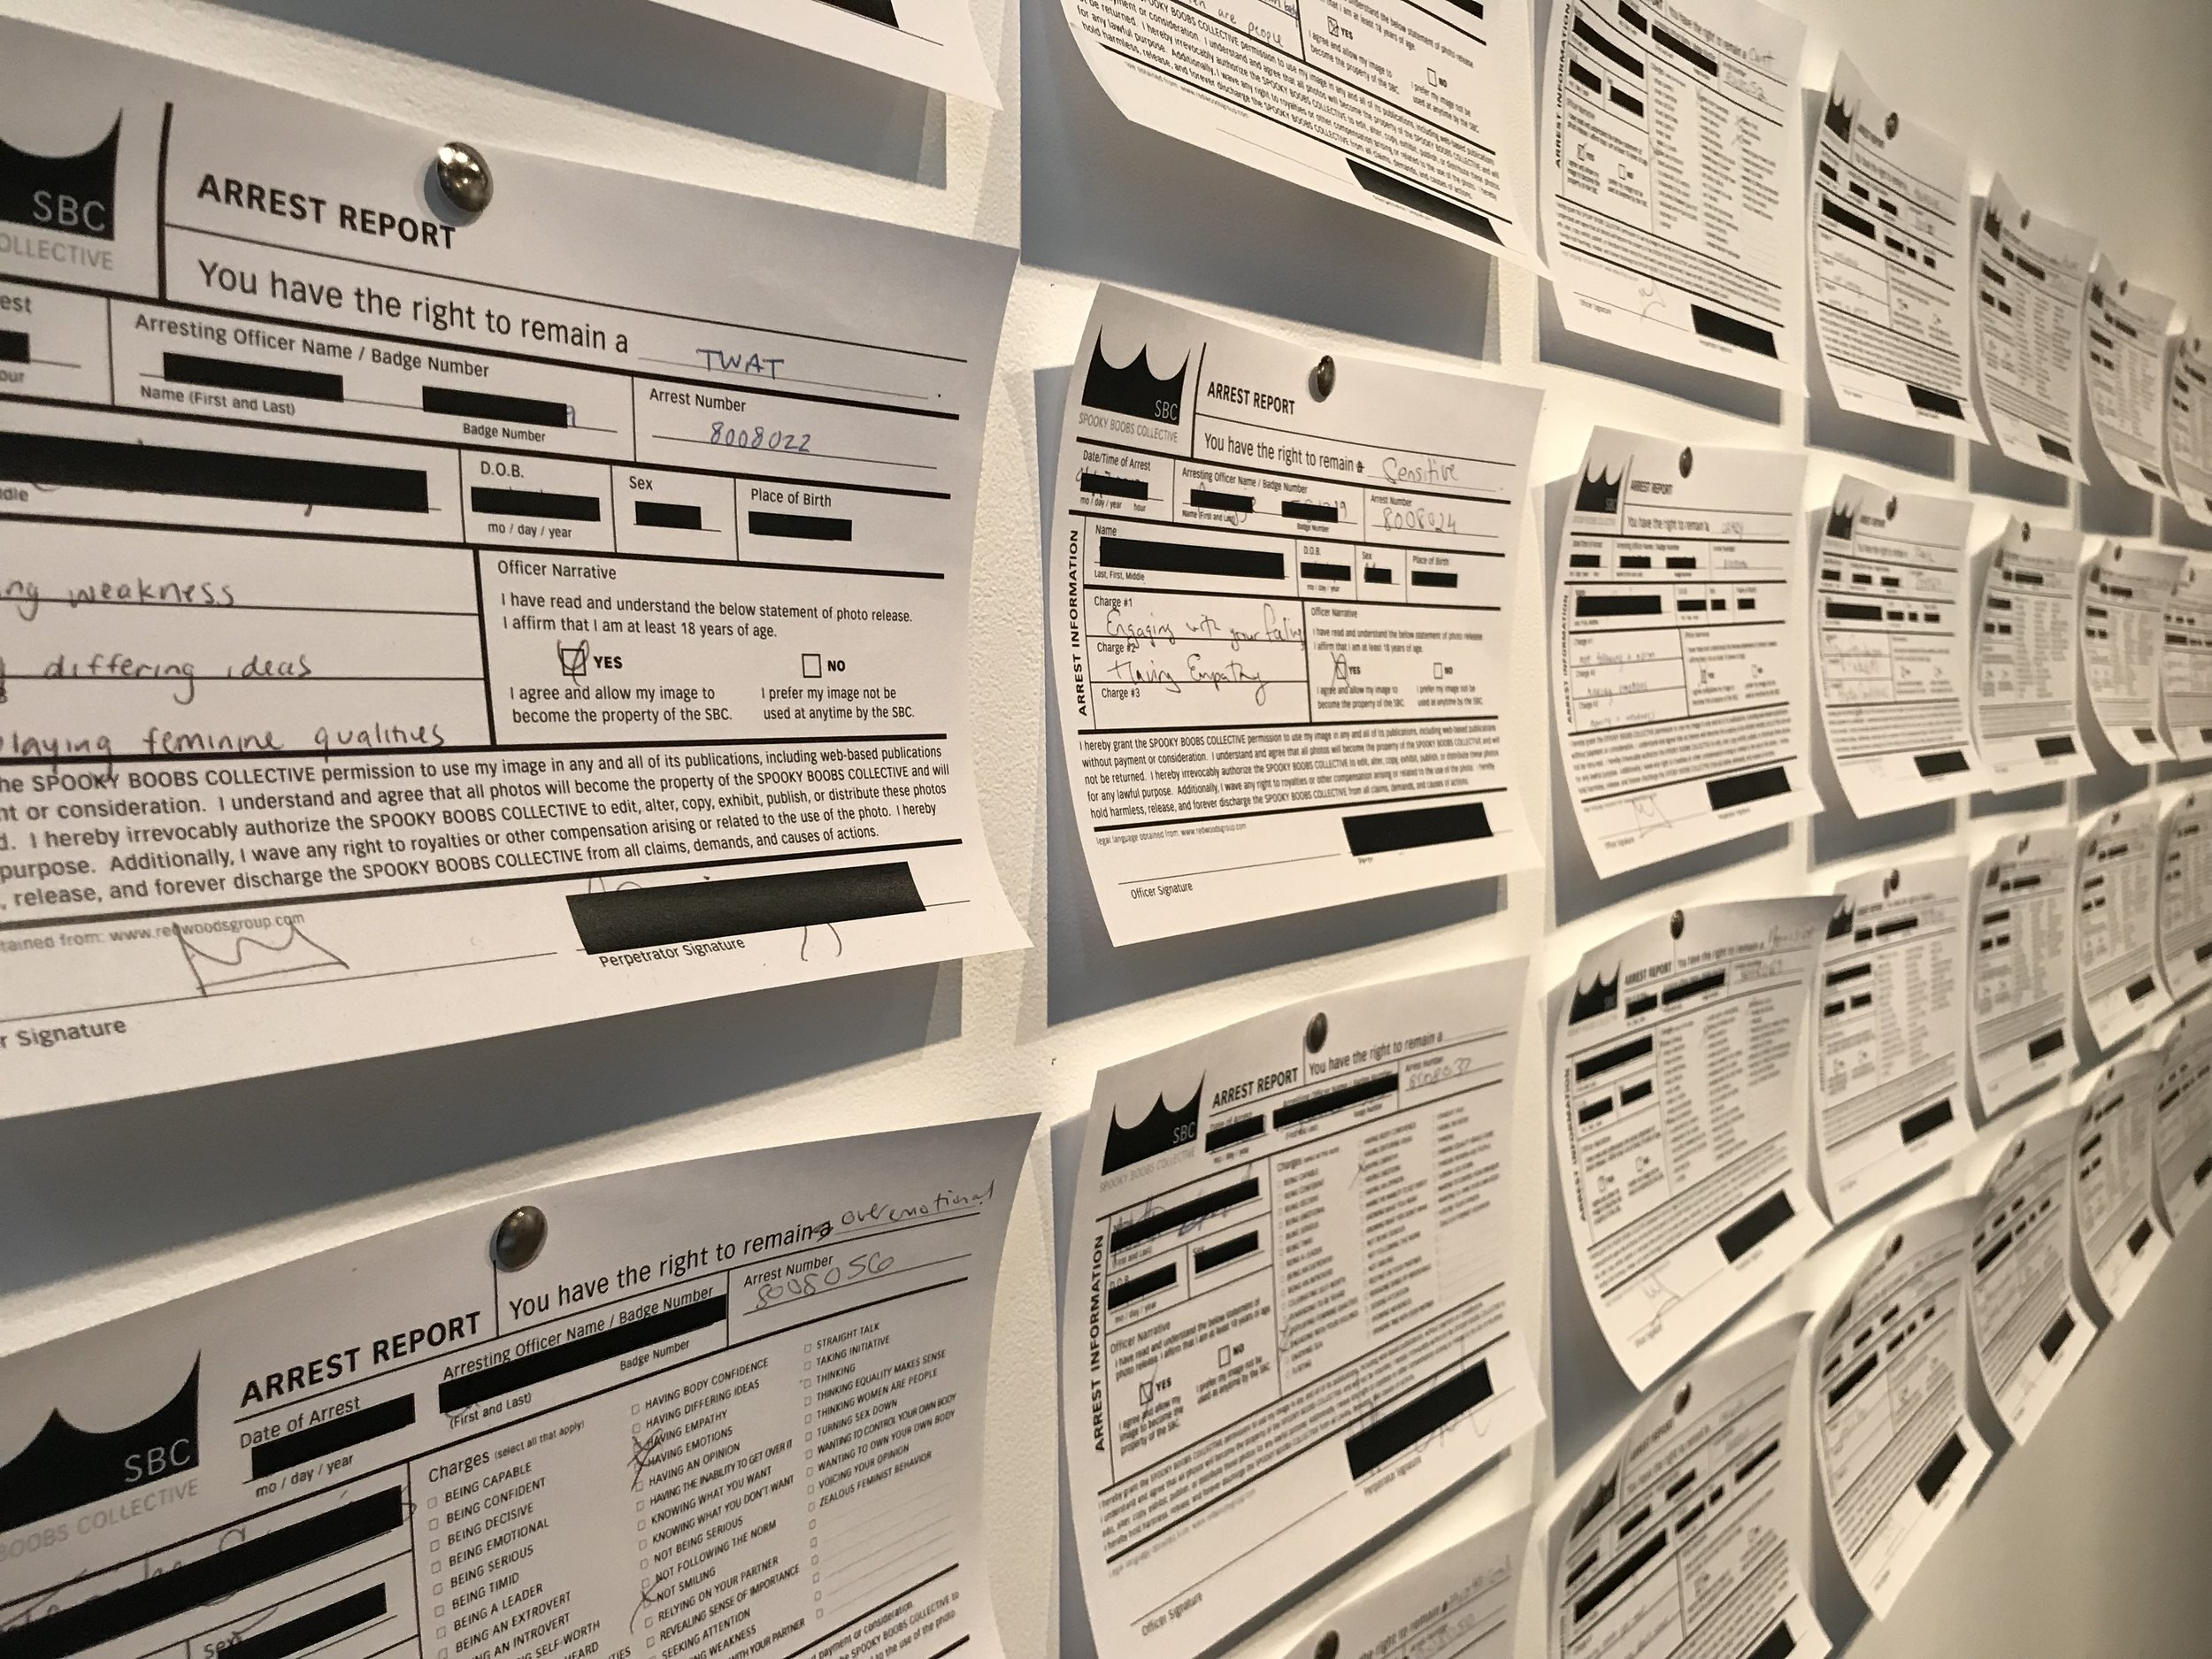 Detail documentation of how redacted arrest reports from previous iterations of this performance were displayed in our solo exhibition  The Pervasive Curse  at the University of Wisconsin-Whitewater's Crossman Gallery in Spring 2019.